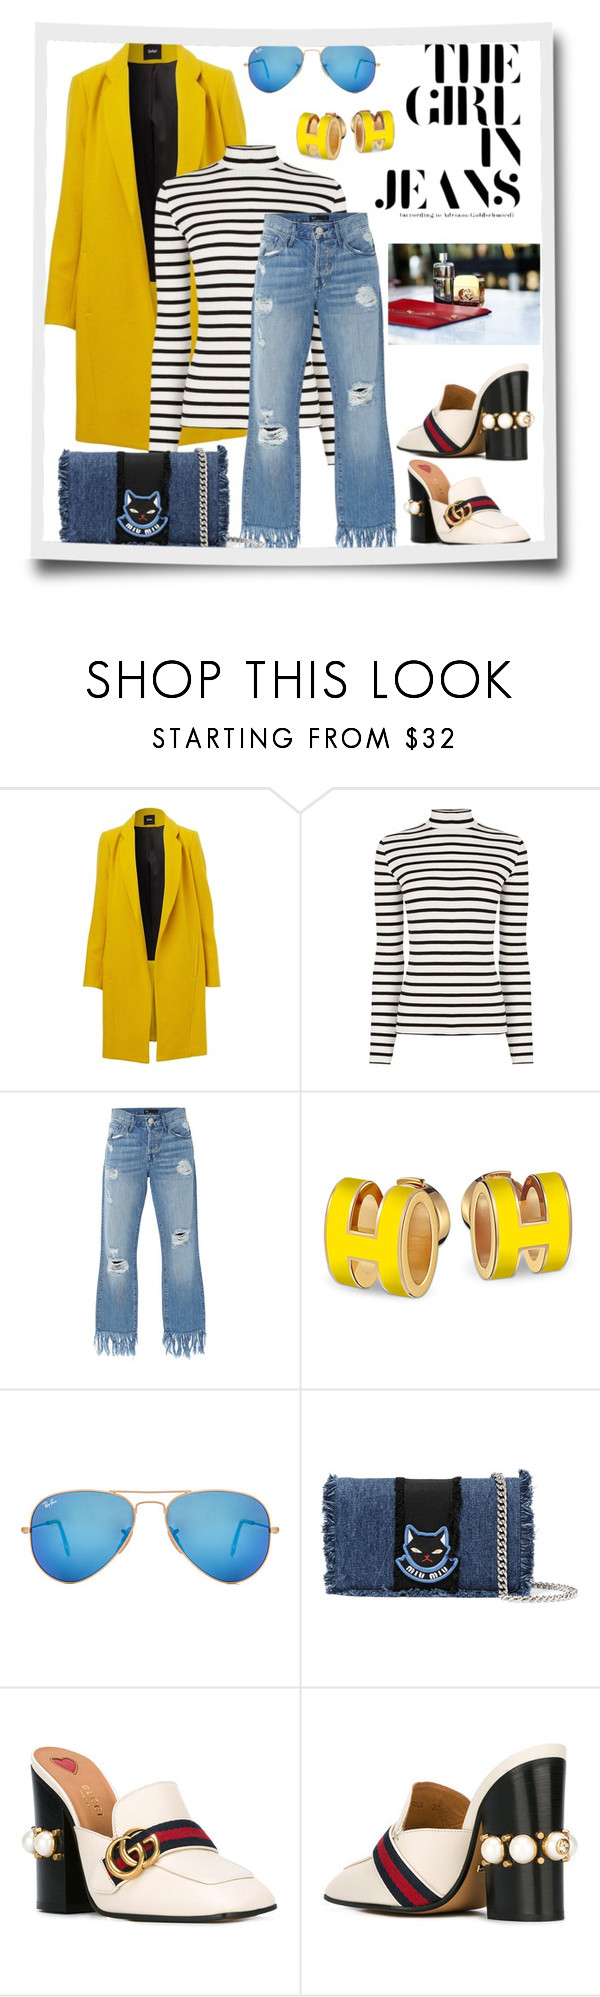 """""""The Girl In Jeans"""" by sherryphoenix ❤ liked on Polyvore featuring Oasis, 3x1, Ray-Ban, Miu Miu and Gucci"""